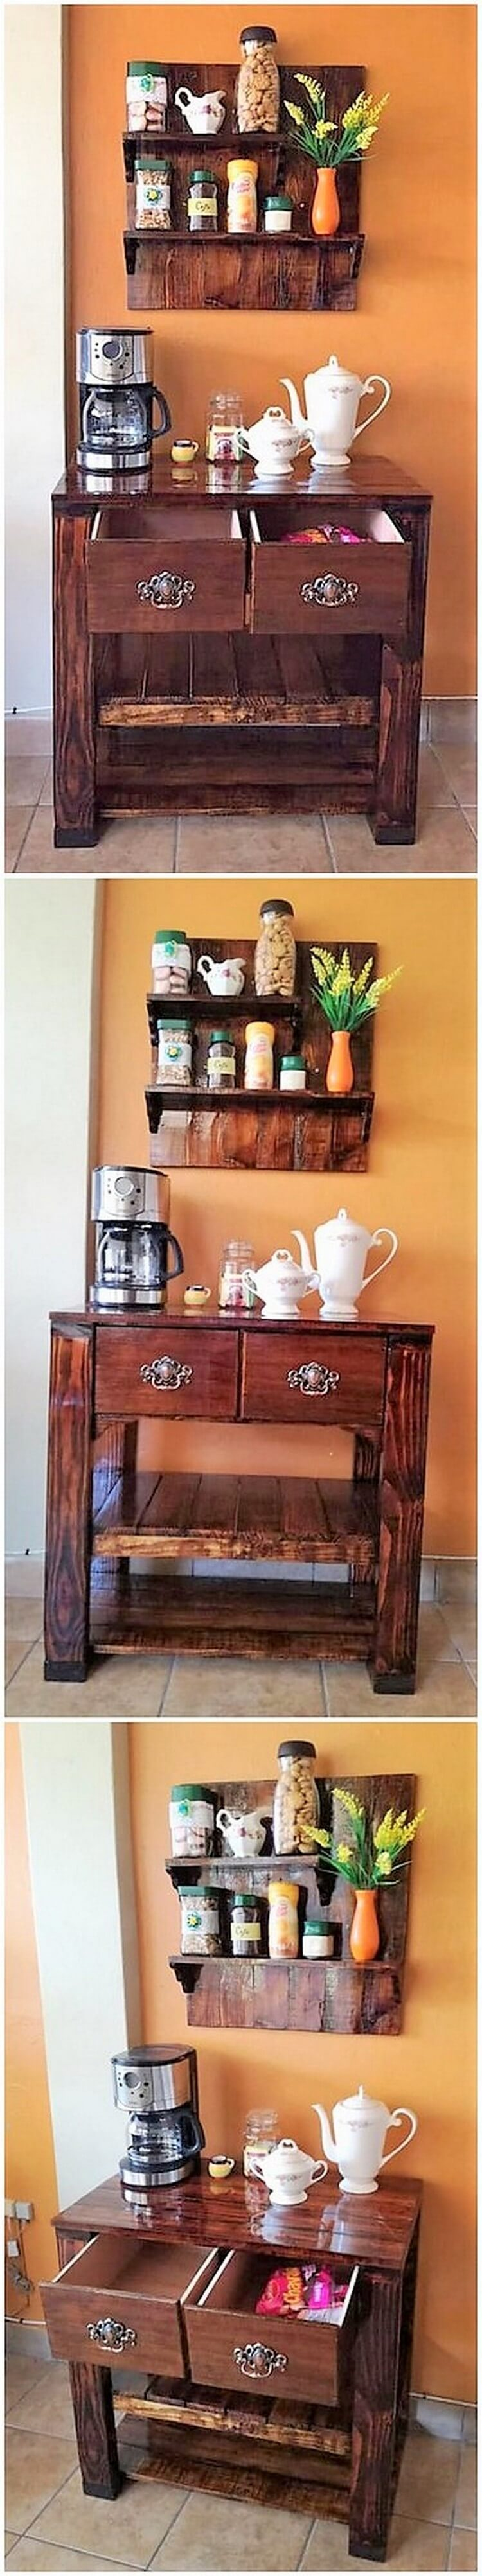 Pallet Kitchen Shelf and Table with Drawers